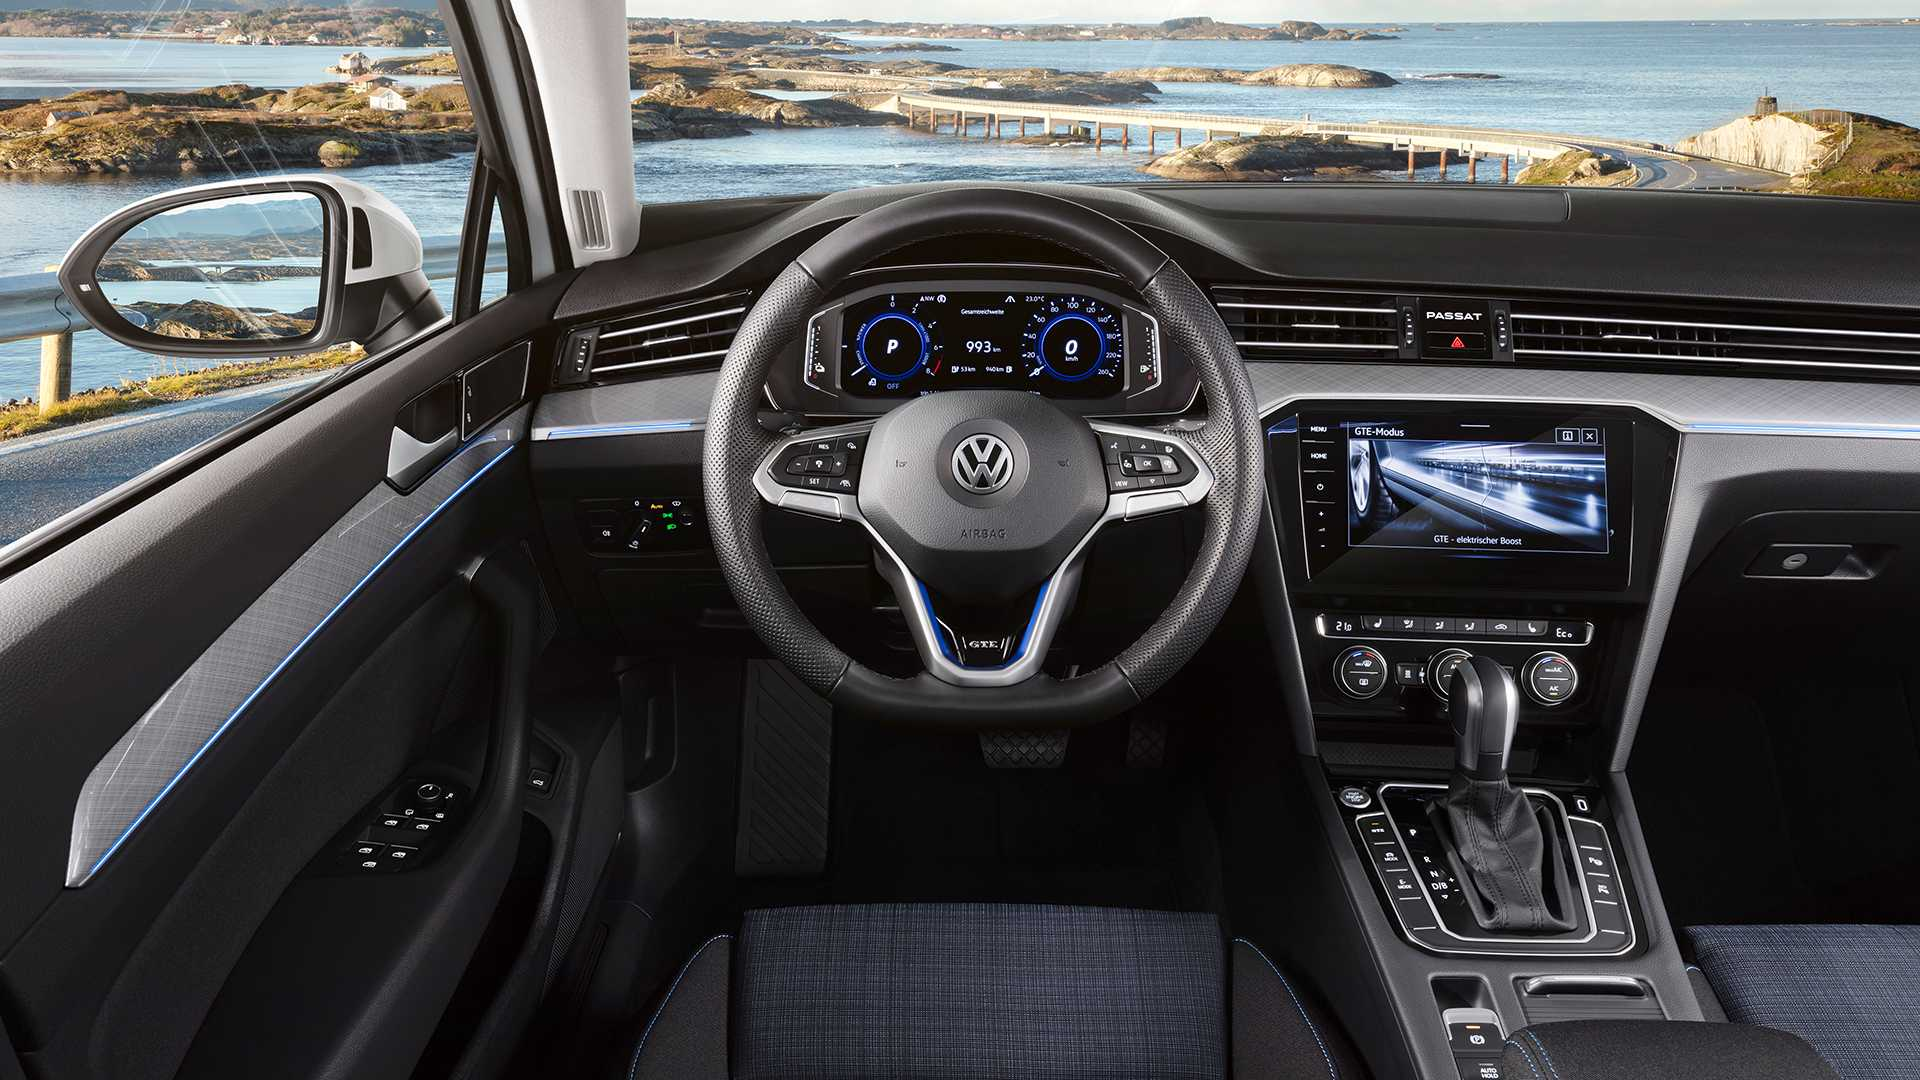 vw-passat-facelift-2019 (35)